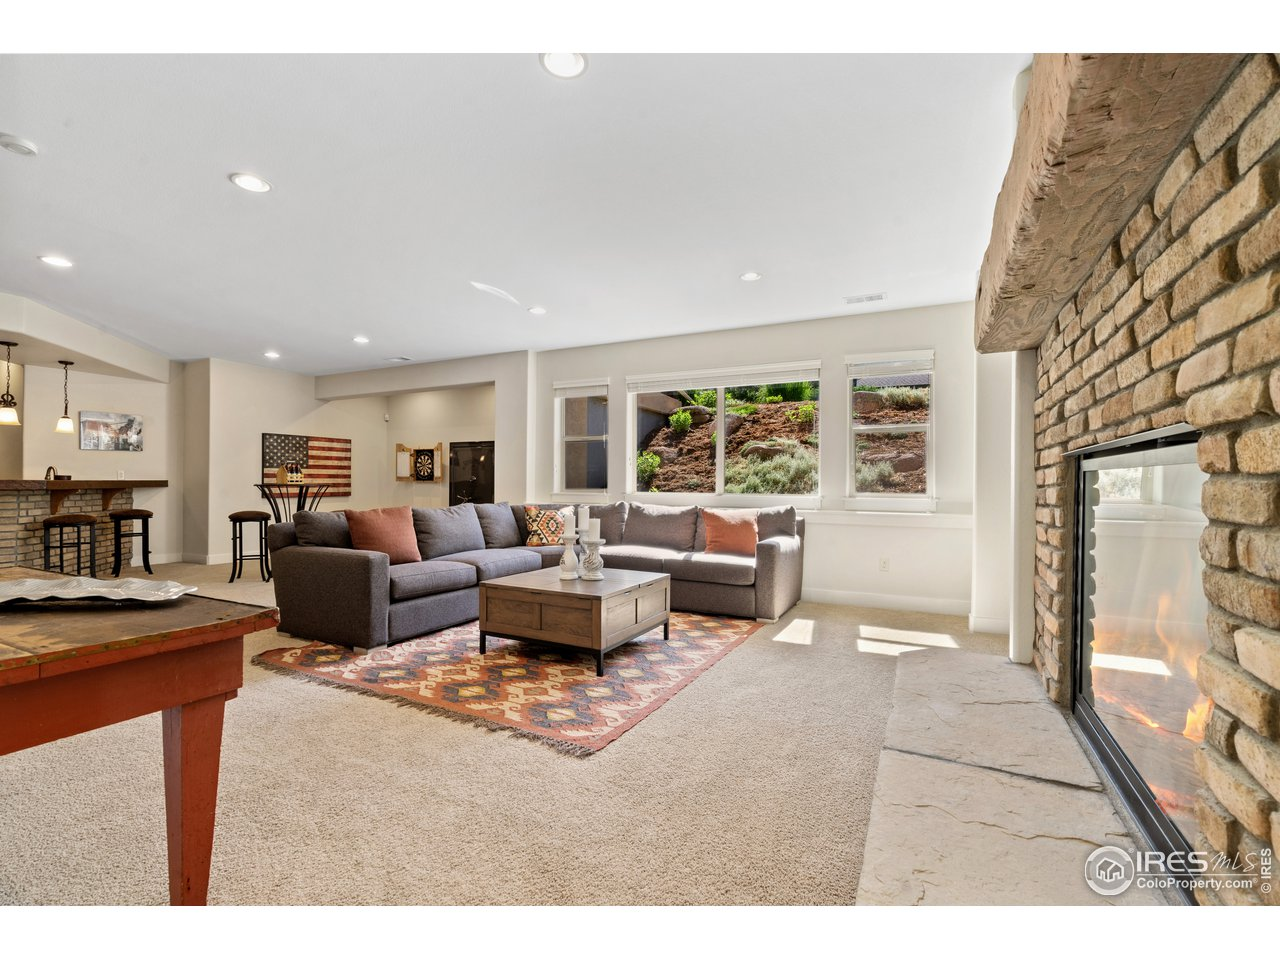 Gas Fireplace in Basement Living Room